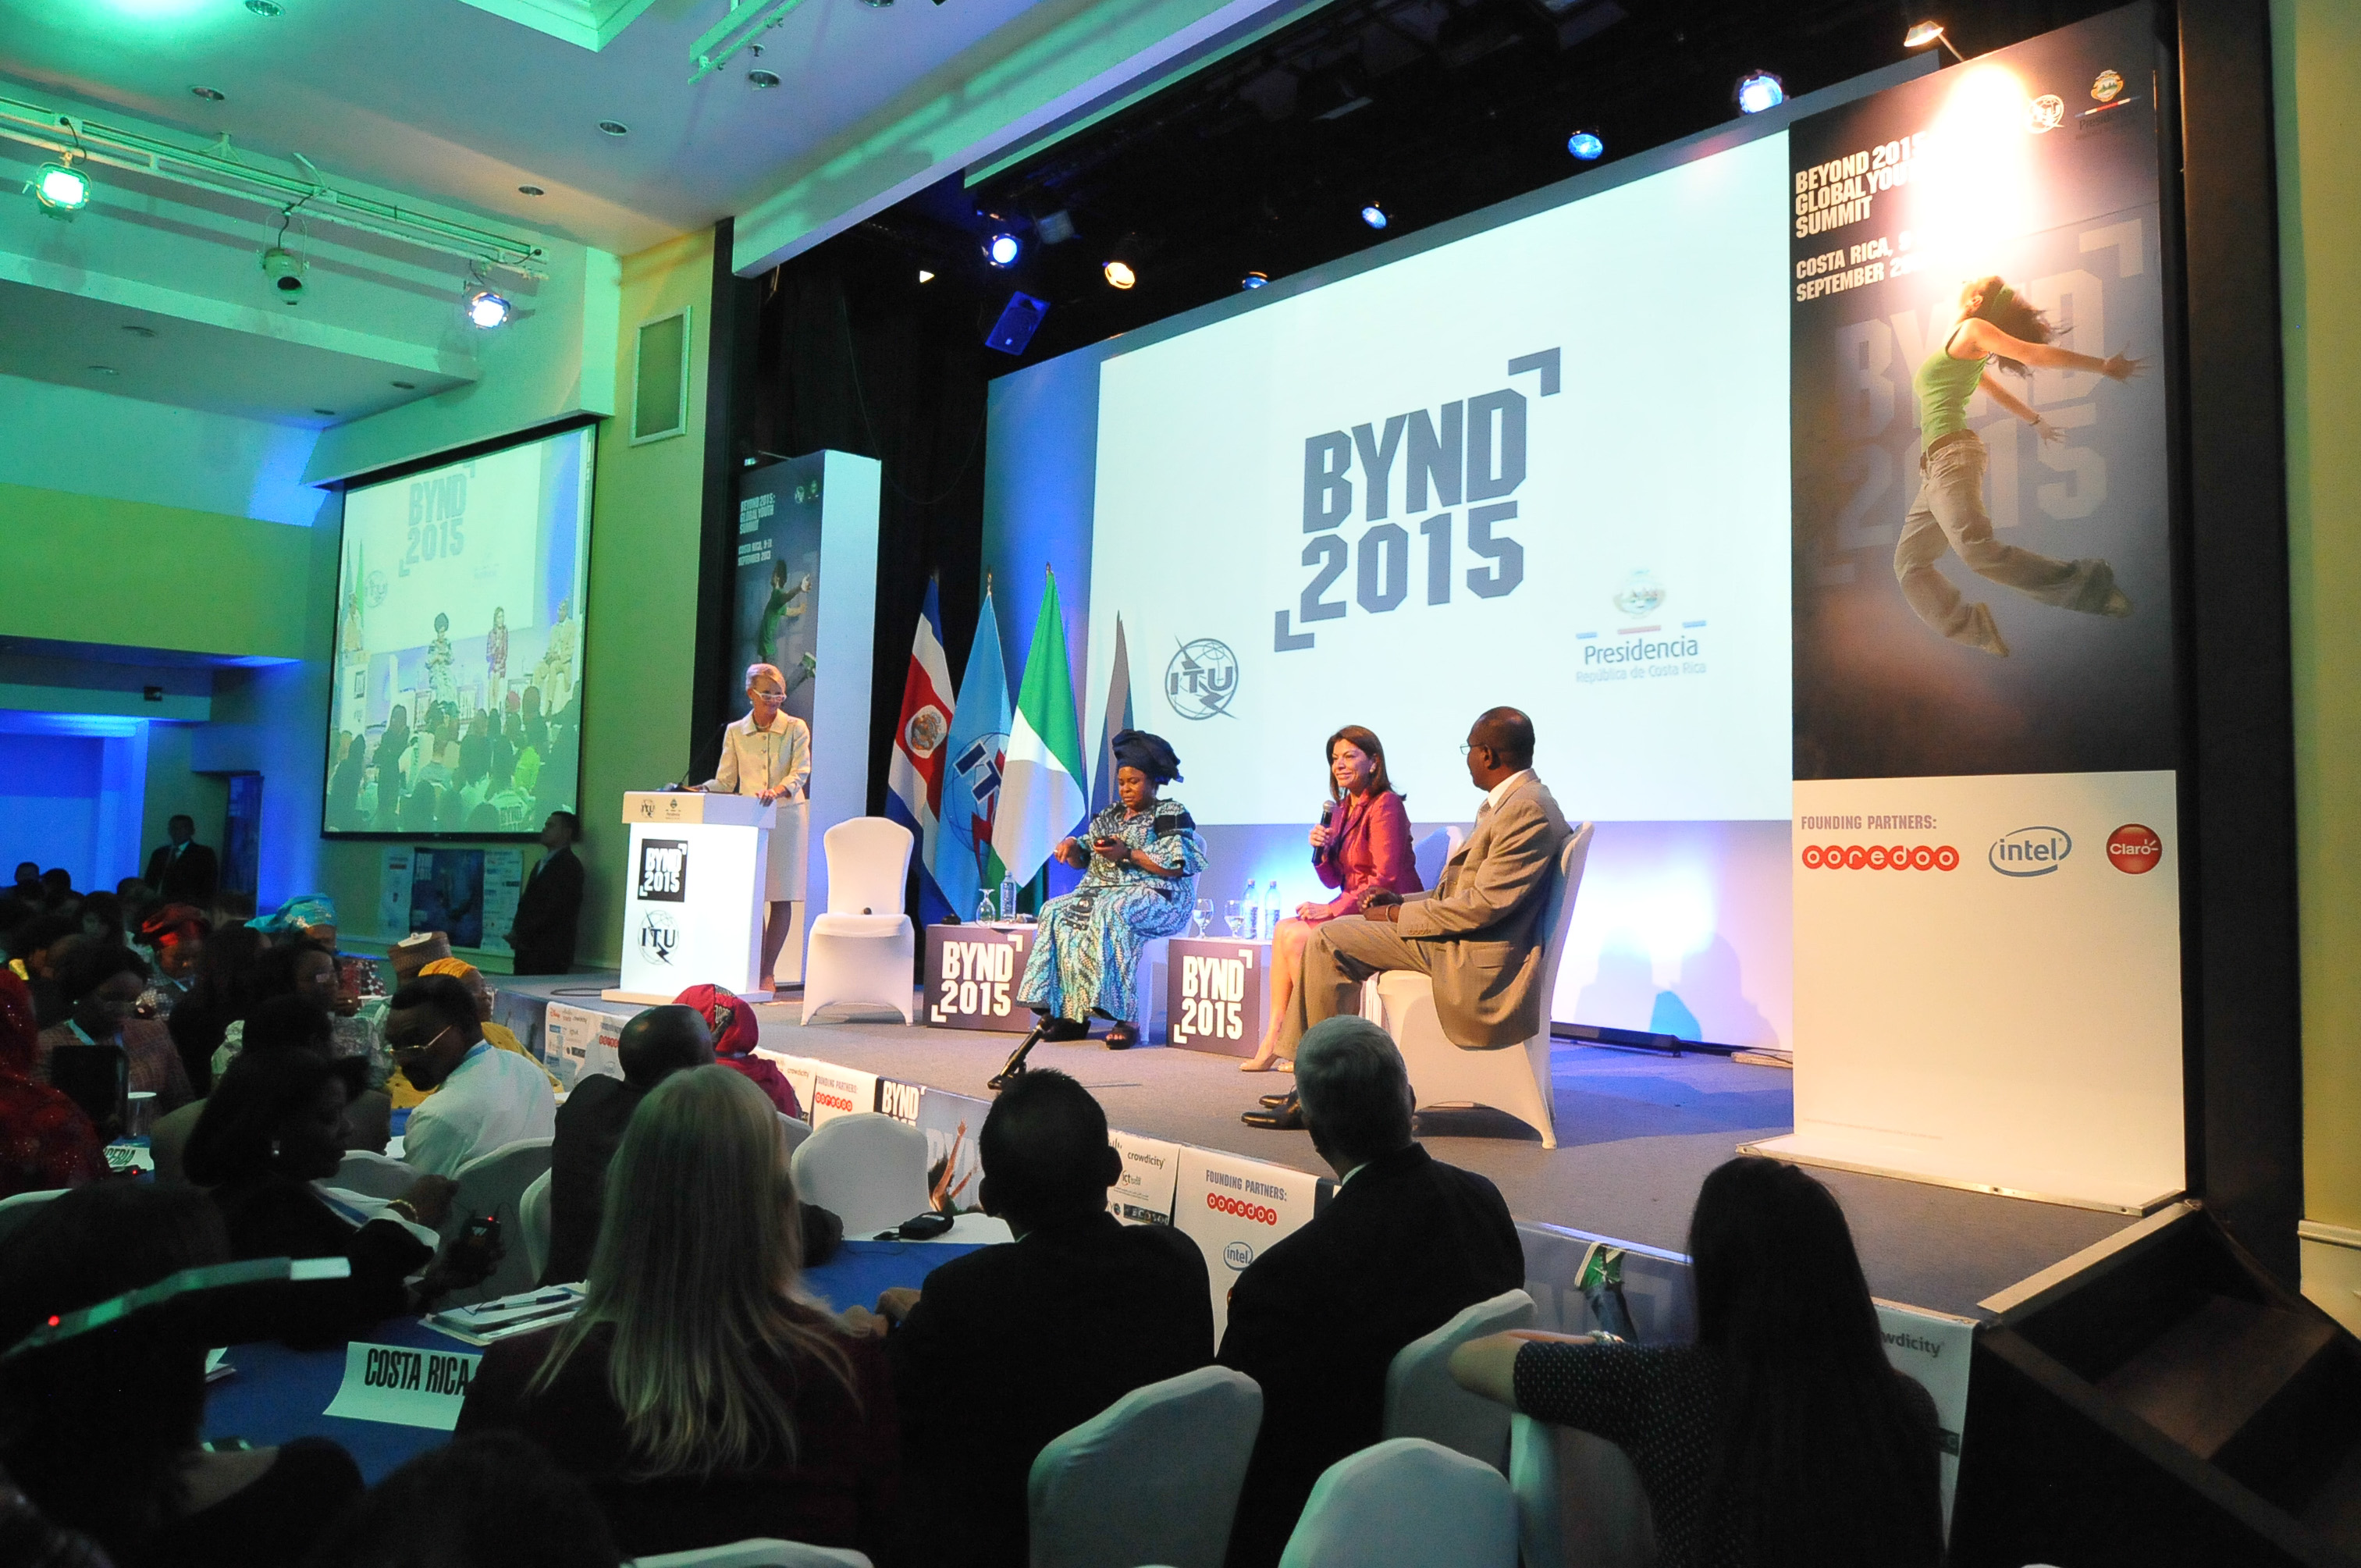 Ahmad Alhendawi at the BYND 2015 Youth Summit in Costa Rica